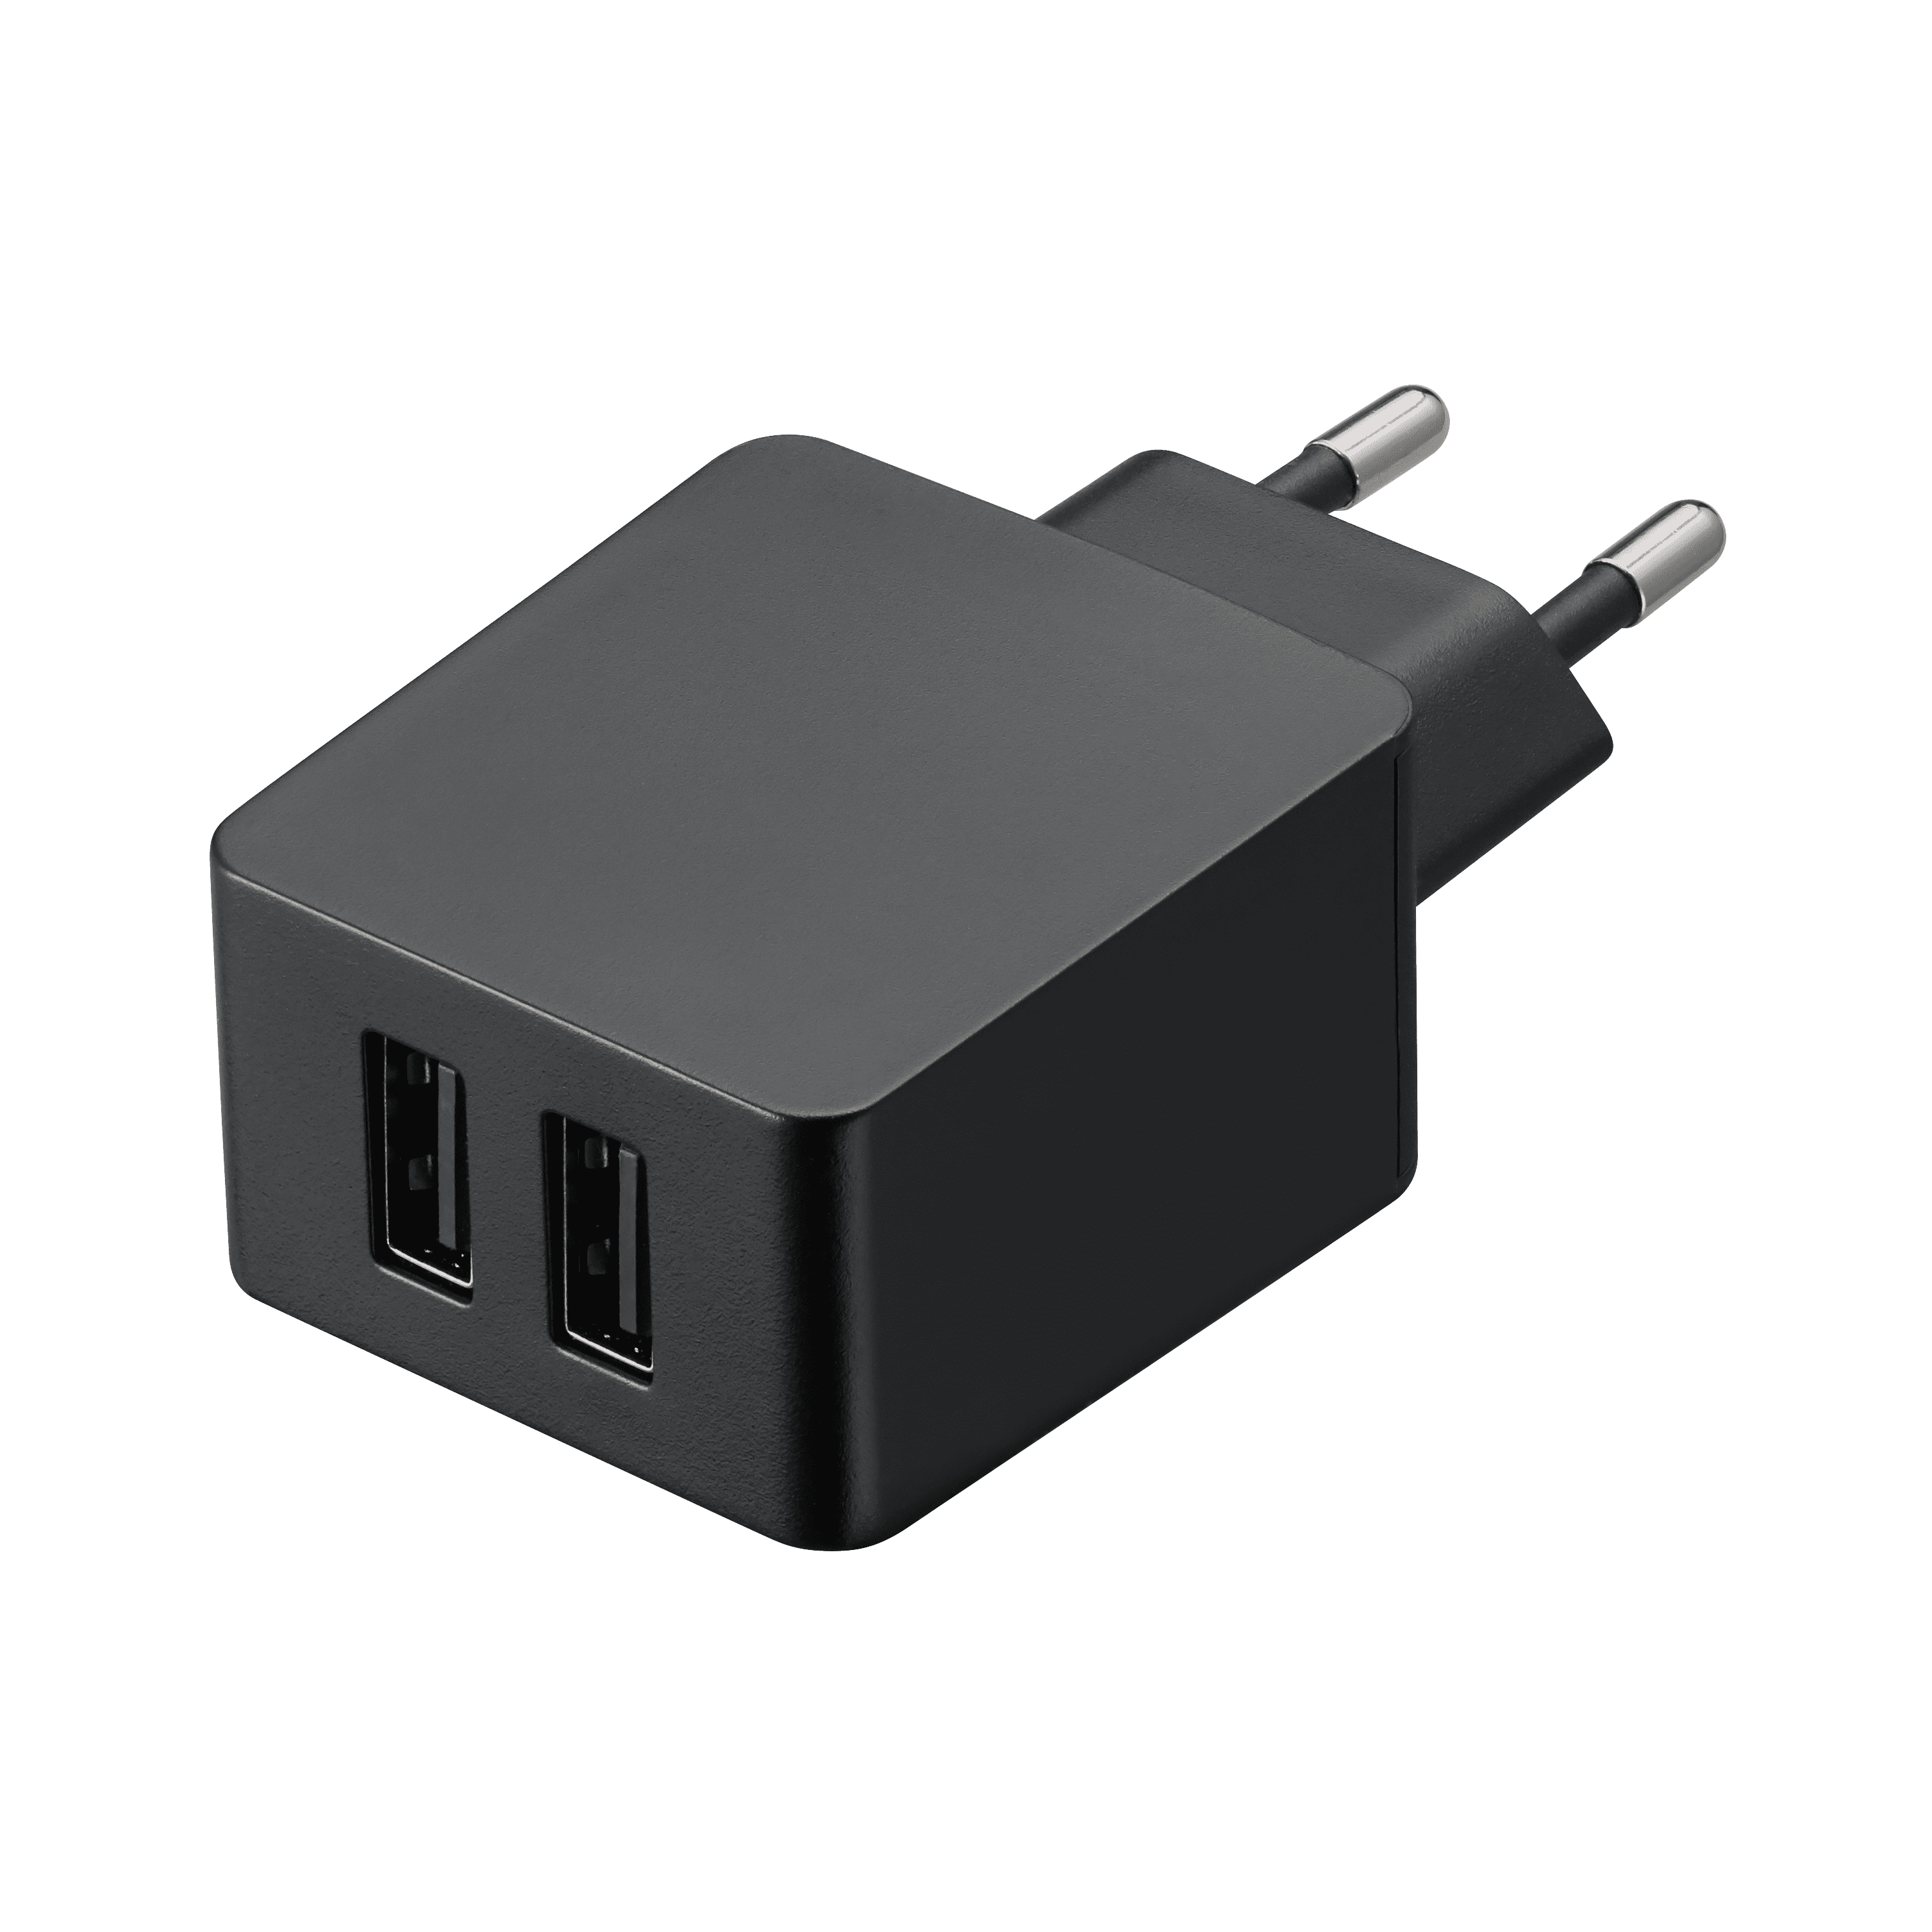 TA-227 Compact dual micro usb wall charger